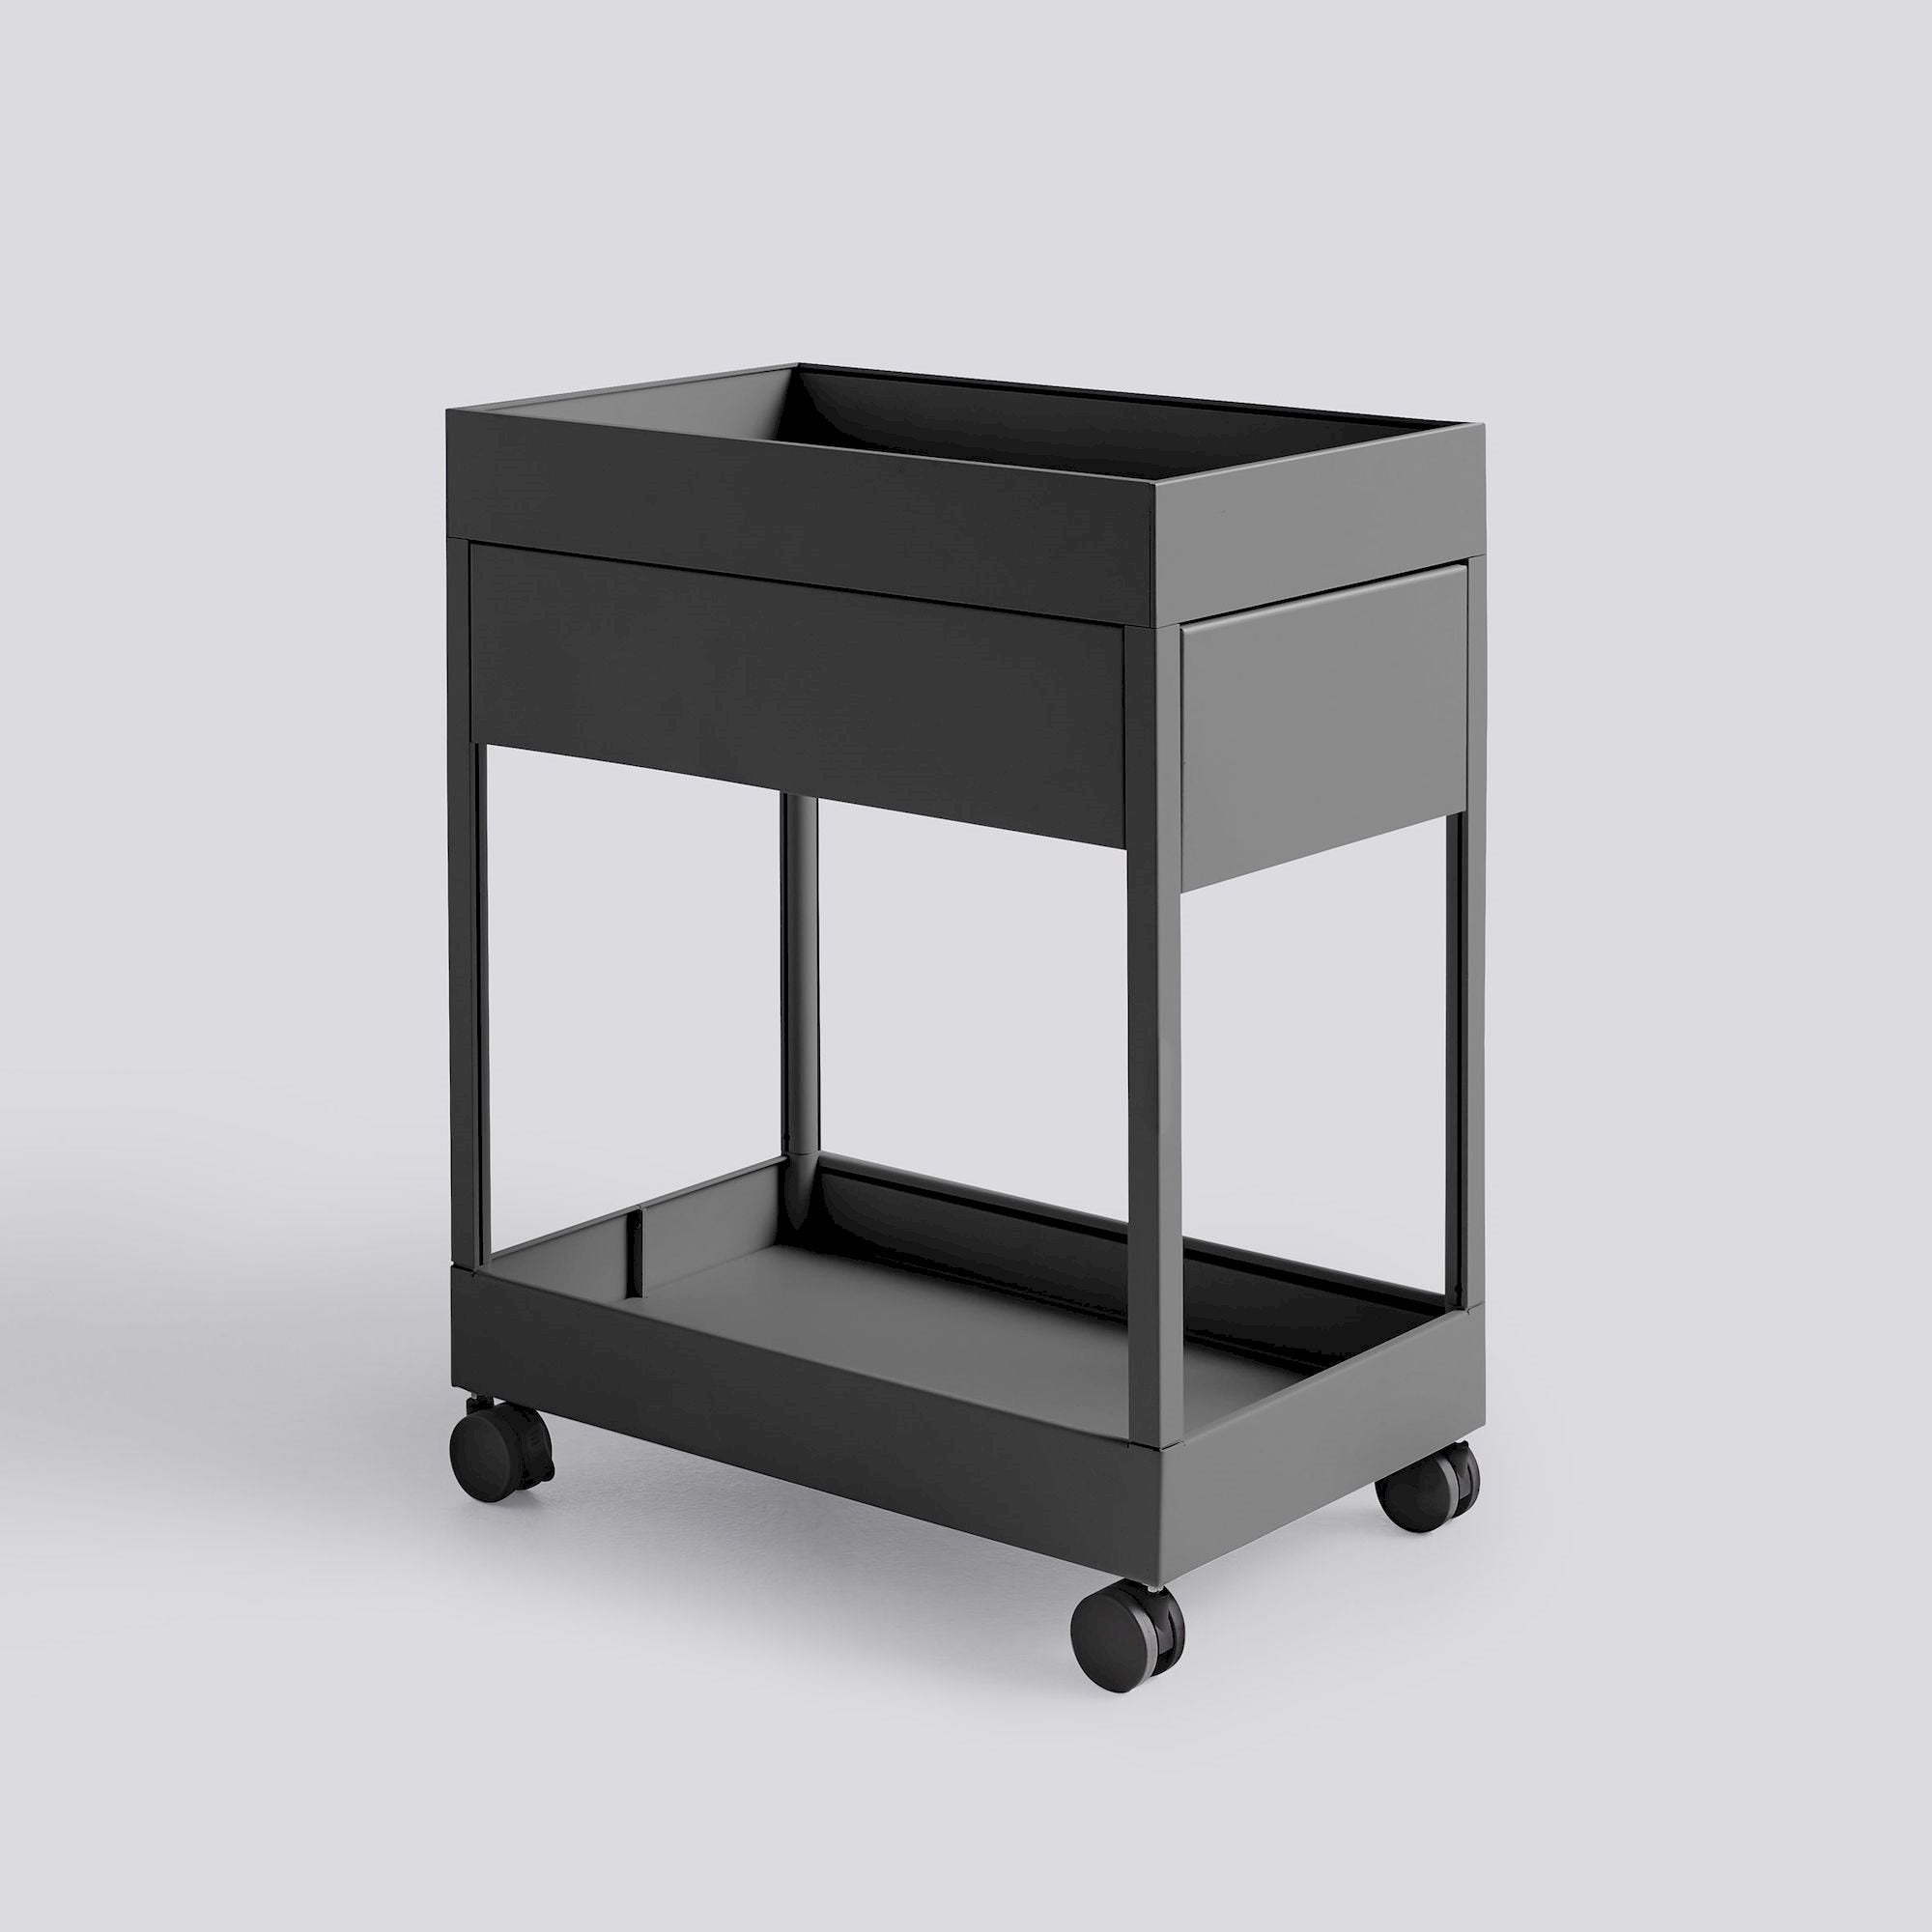 New order Trolley A, 1 drawer & tray top